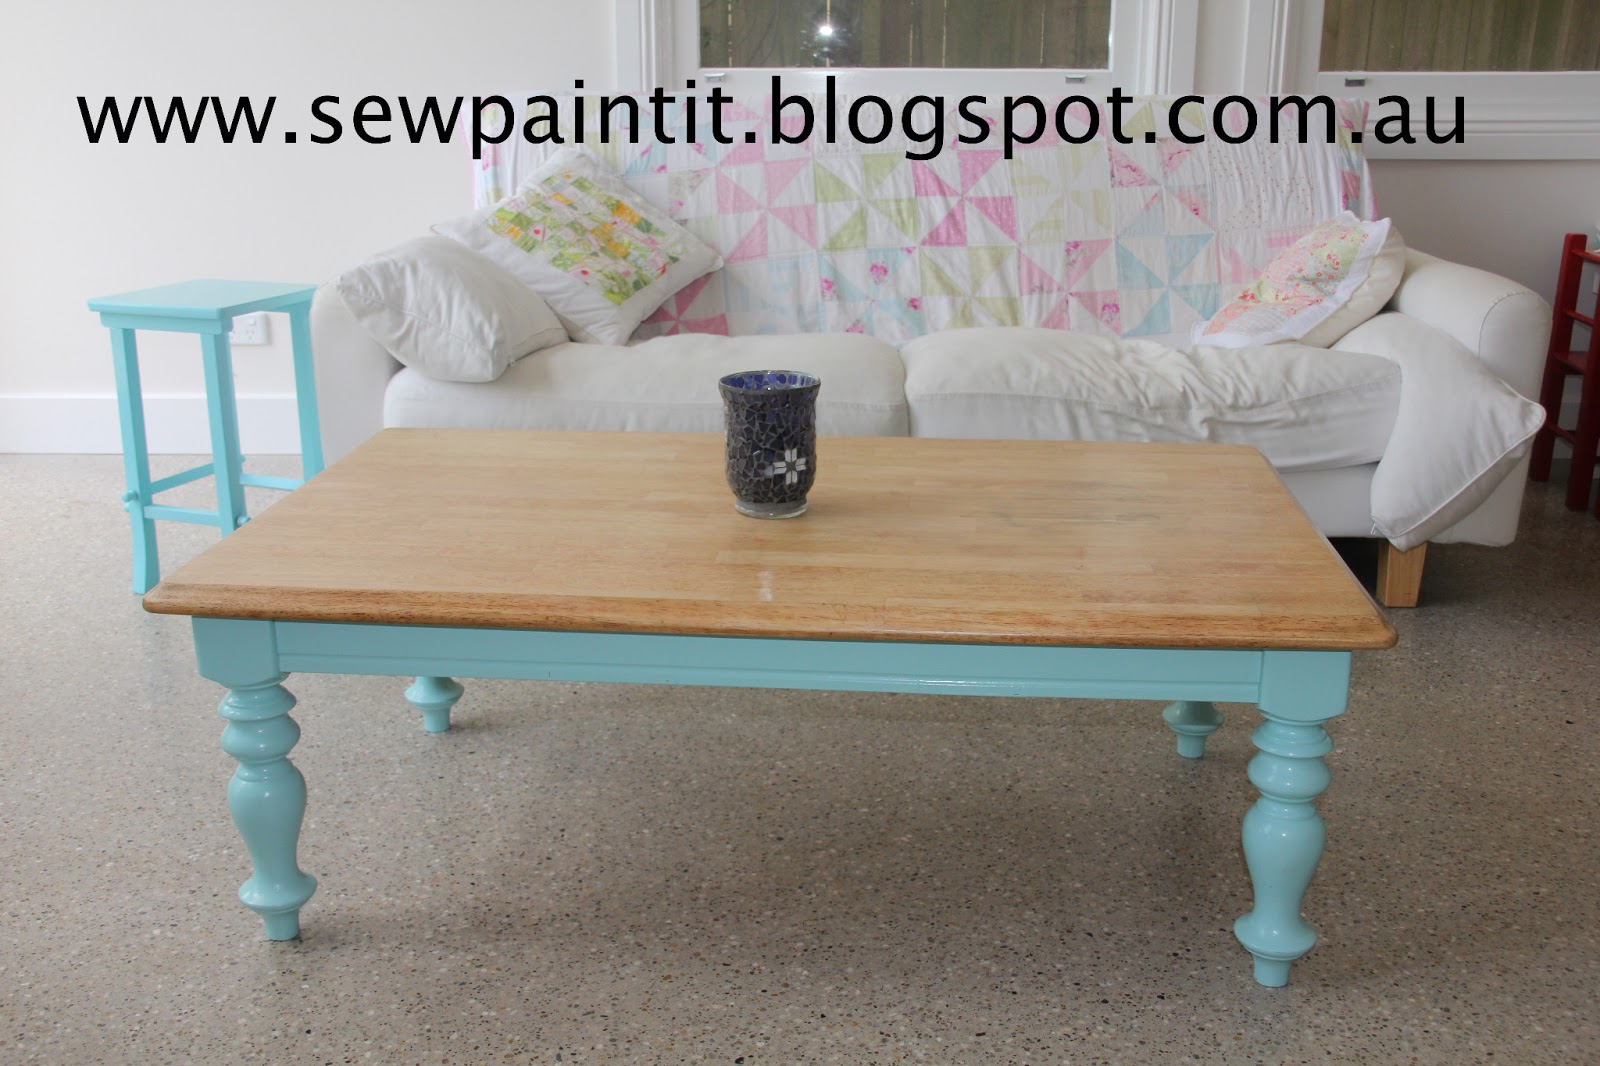 Sew paint it coffee table tea or me i am going to paint a big circle over the mark in the same colour as the legs then no one will know i just havent done it yet geotapseo Image collections